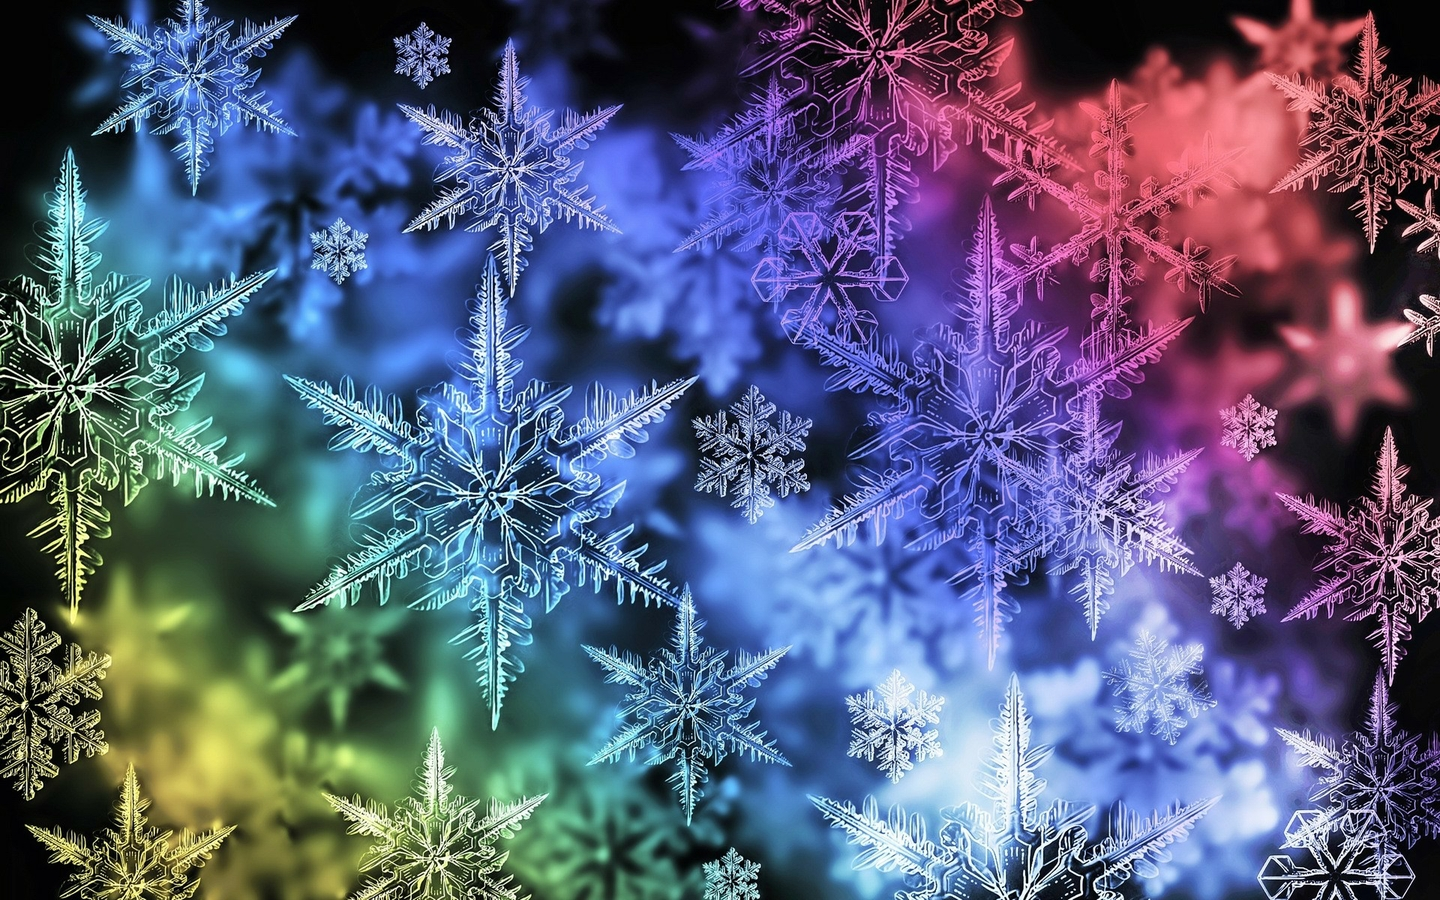 Colorful Snowflake Desktop Wallpaper 1440x900